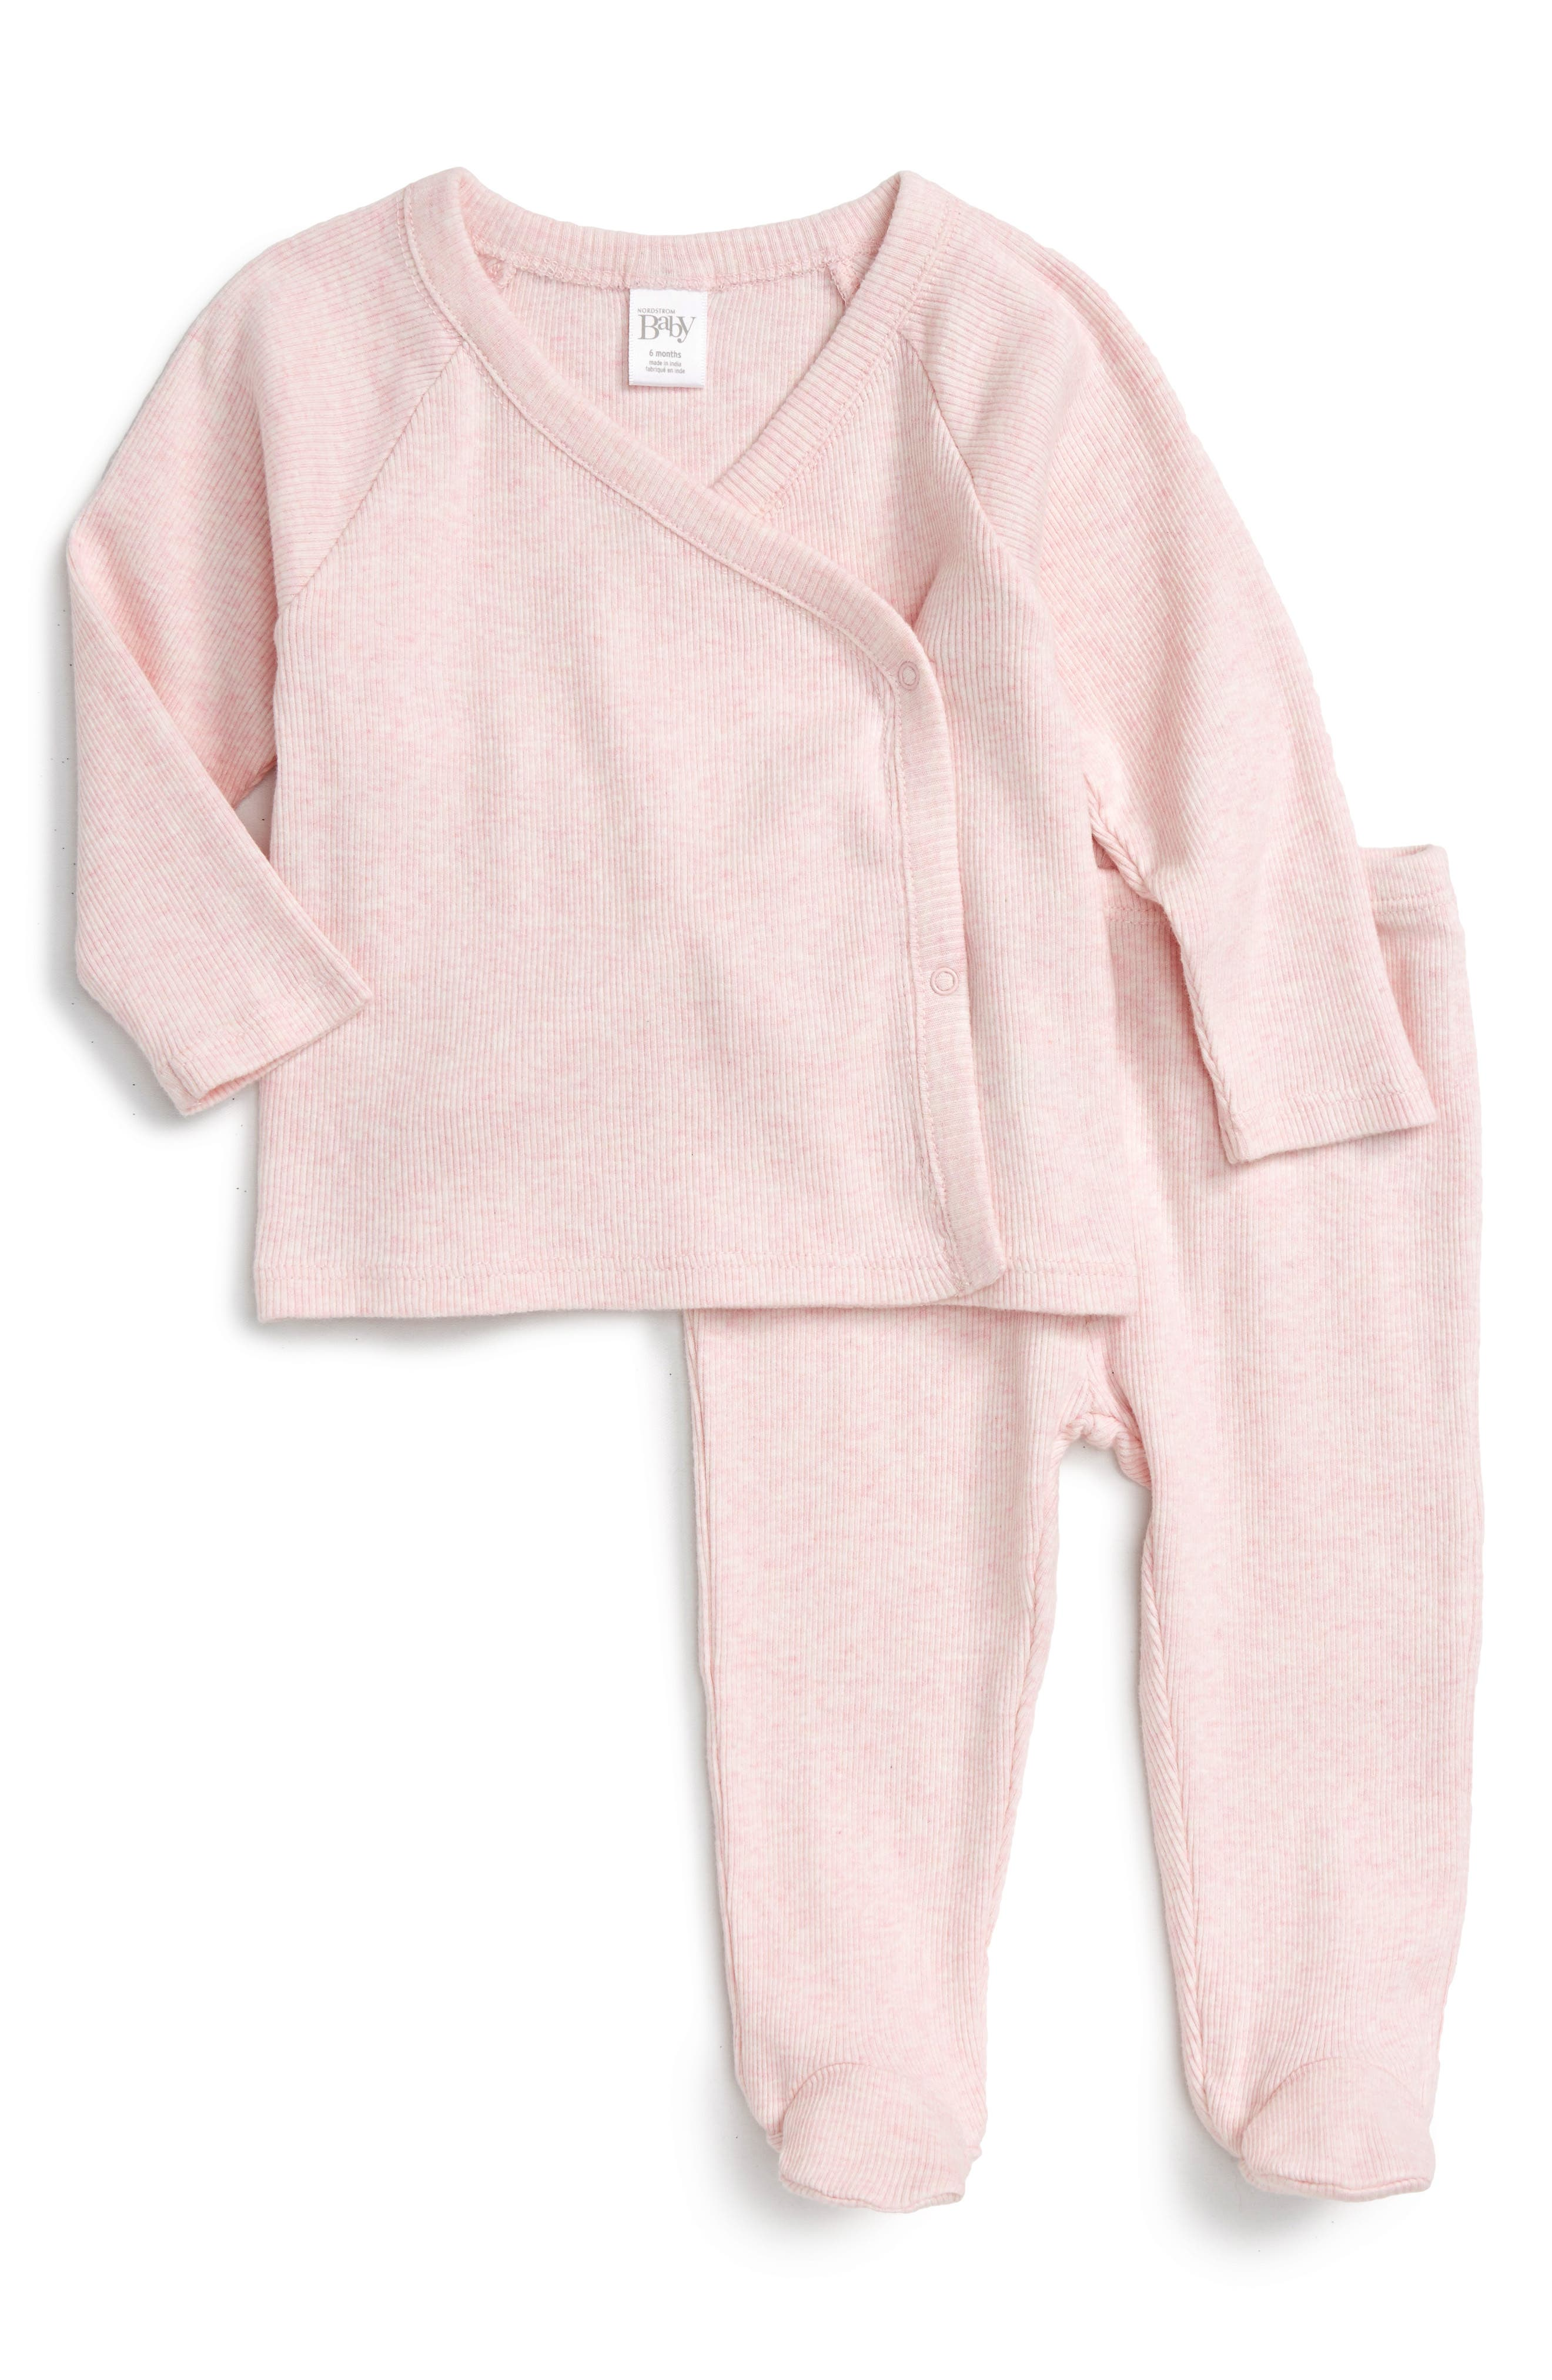 NORDSTROM BABY,                             Wrap Top & Footed Pants Set,                             Main thumbnail 1, color,                             PINK BABY HEATHER